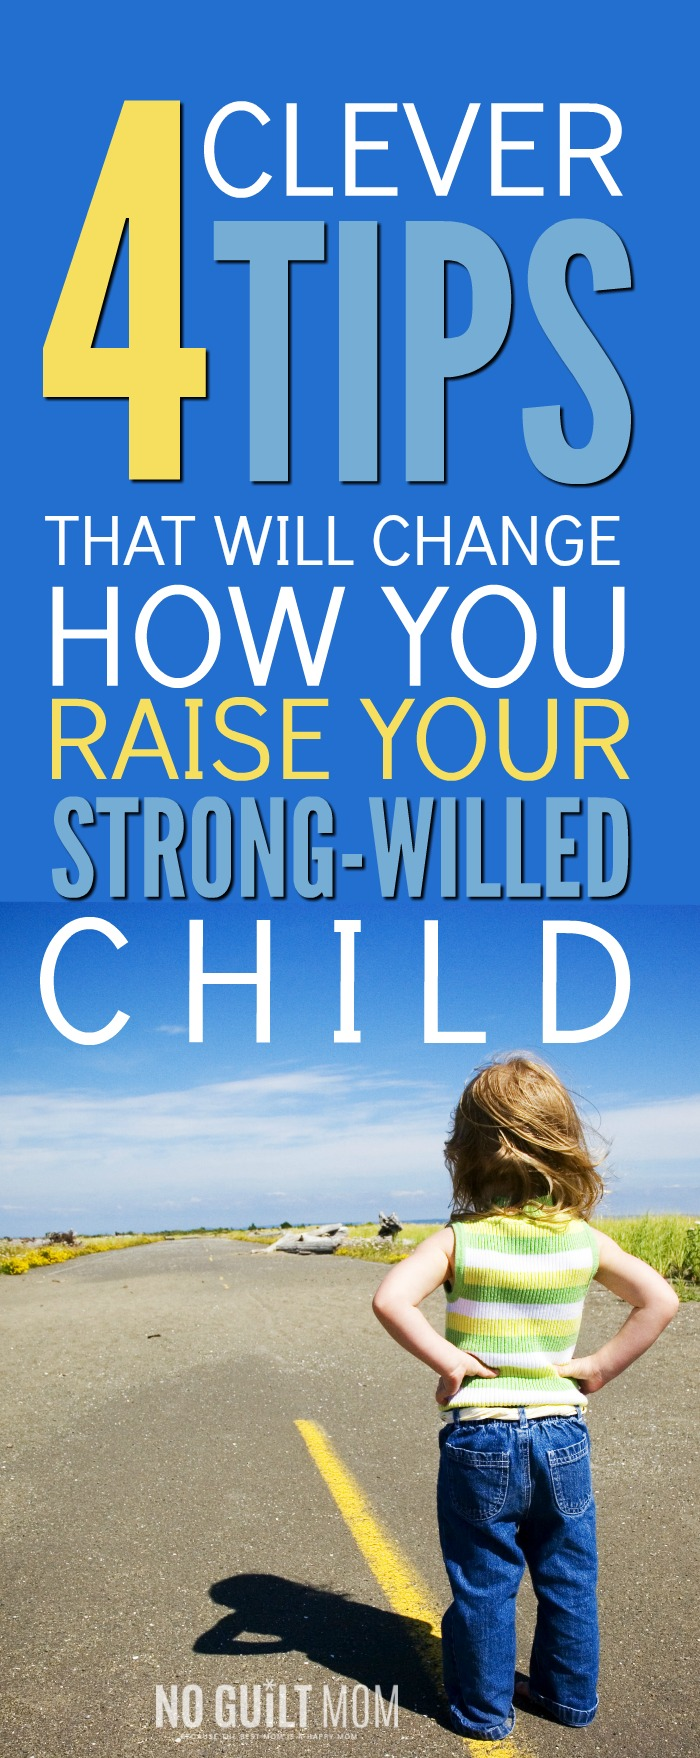 OMG! How hard it is to be a positive parenting when you have a strong willed child!!?  These discipline tips will help you deal with stubborn children among all the temper tantrums and power struggles.  They will also help you build connection with your kid.  Win. Win. Great advice for moms who embrace gentle parenting.